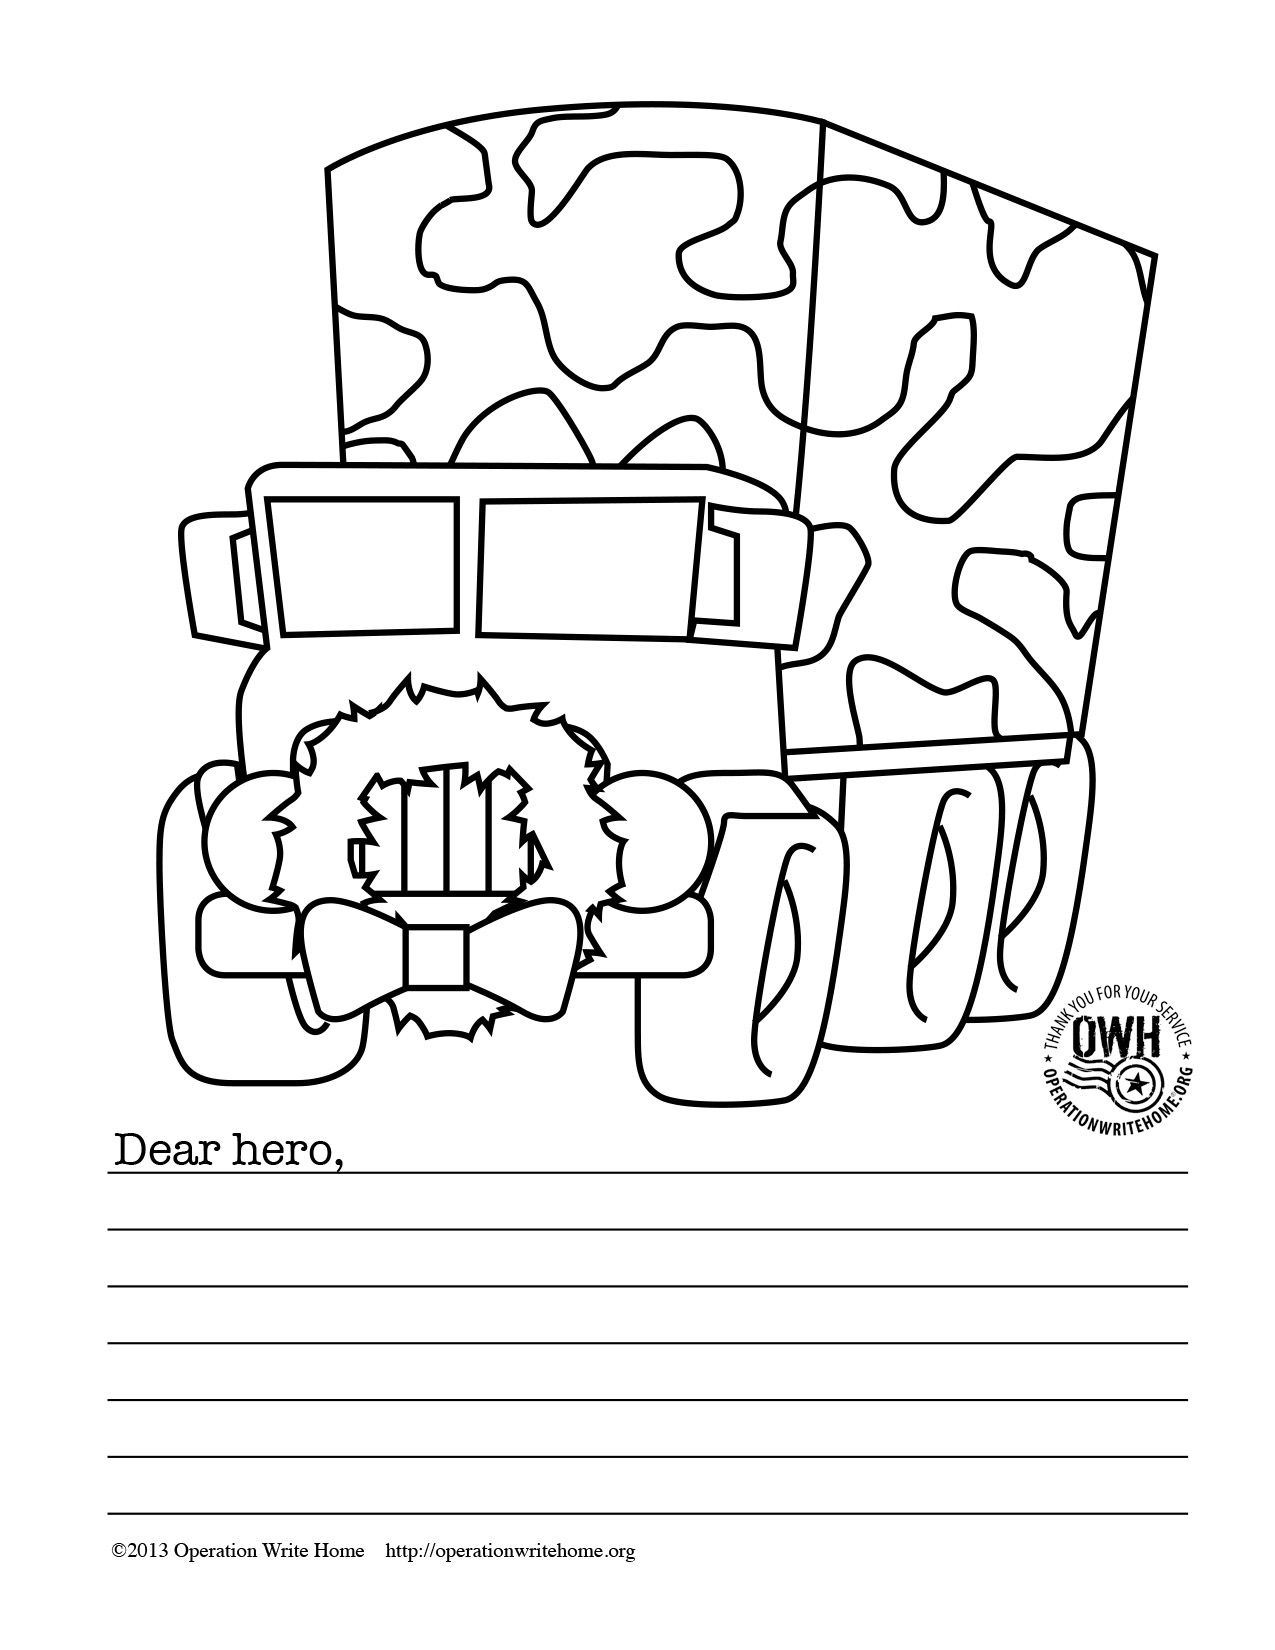 Free Military Coloring Pages For Christmas! | Operation Write Home - Free Printable Christmas Cards To Color